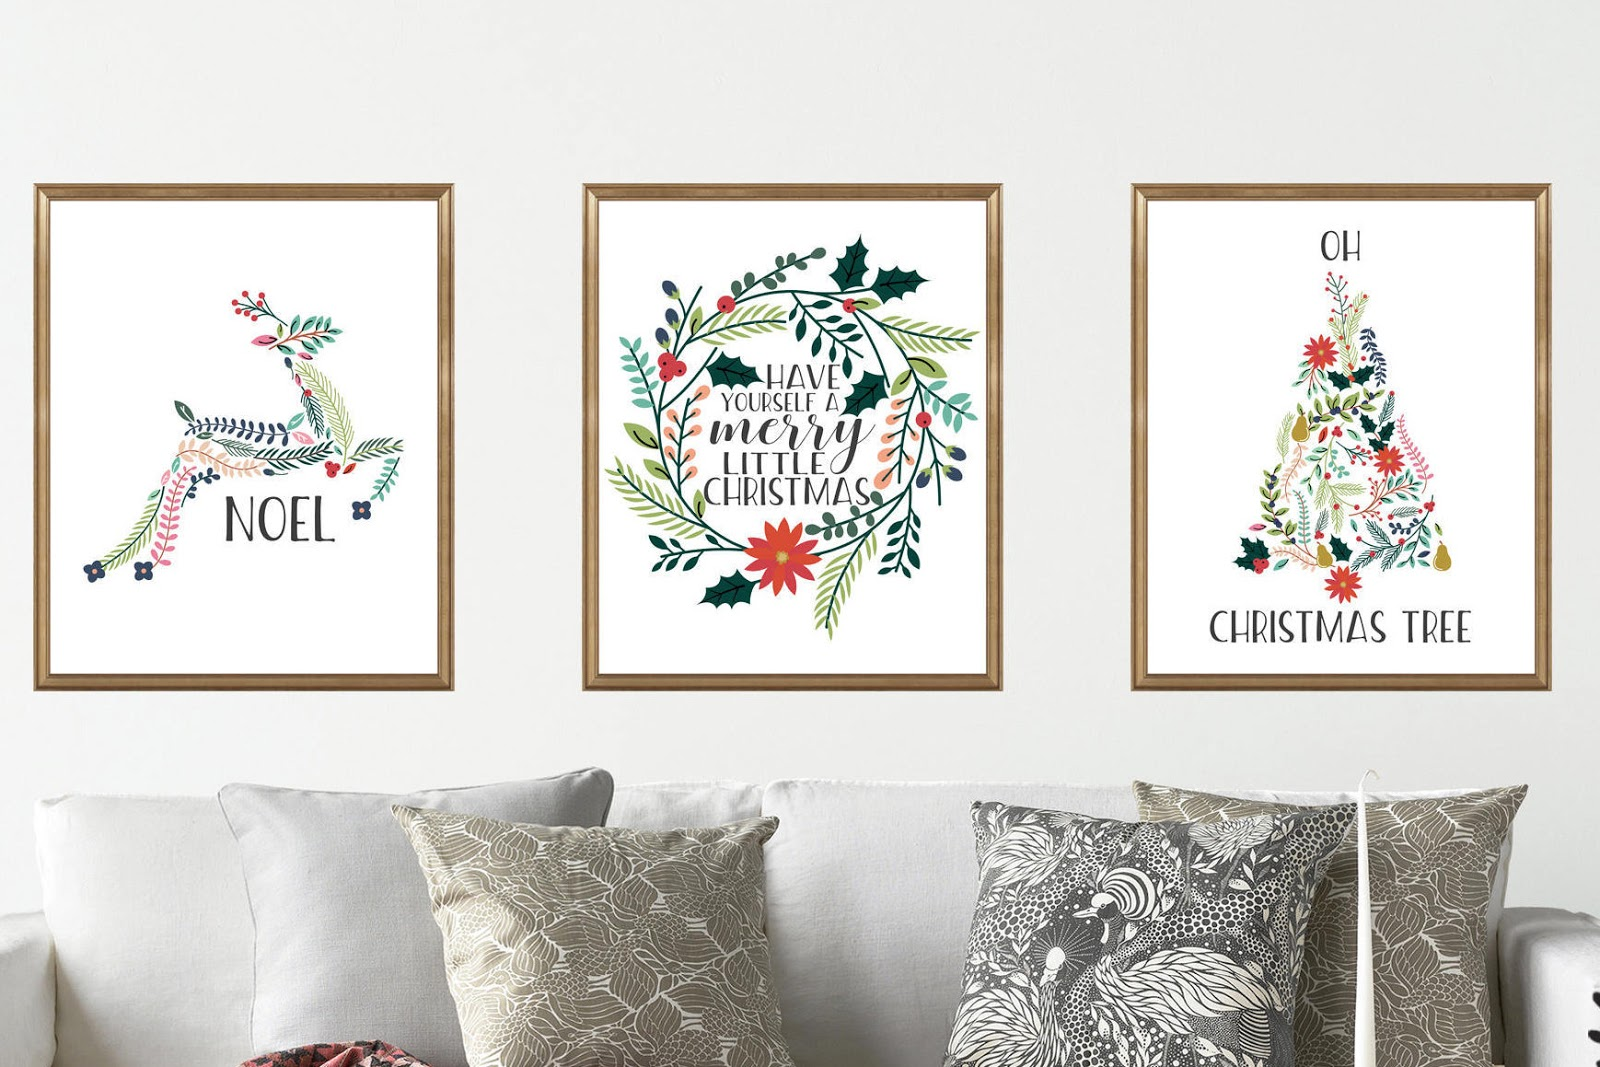 Handmademn printable downloads for gifts and gift wrap from printable christmas wall art in two sizes from twinkle me designs 11 solutioingenieria Choice Image